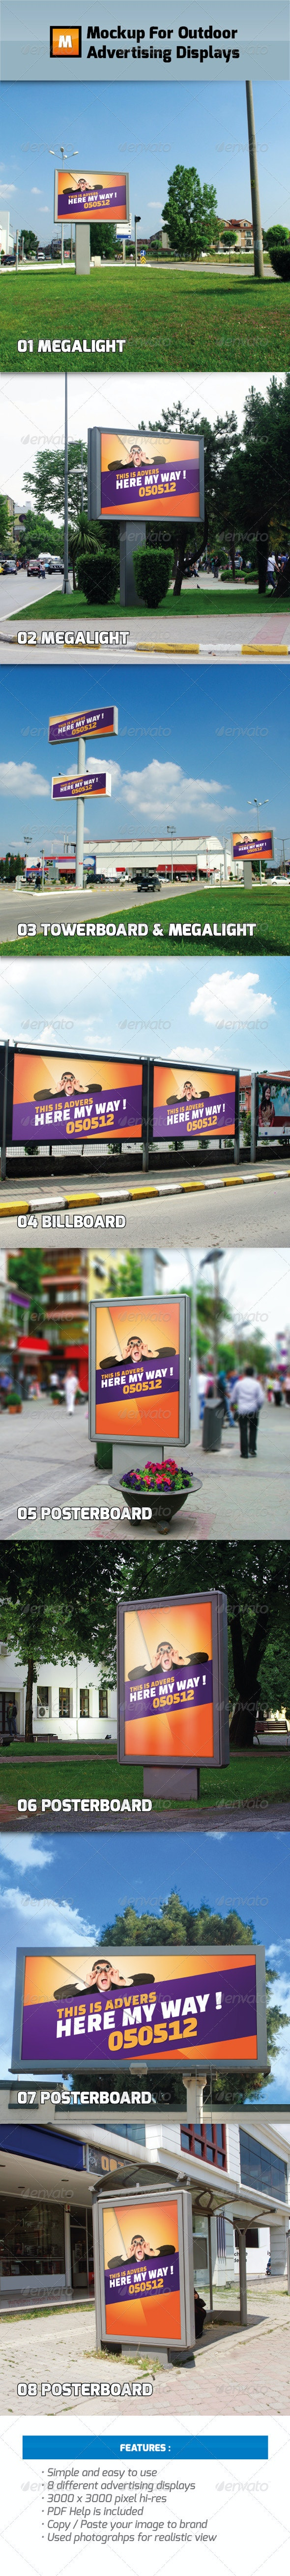 Mockup For Outdoor Advertising Displays - Signage Print